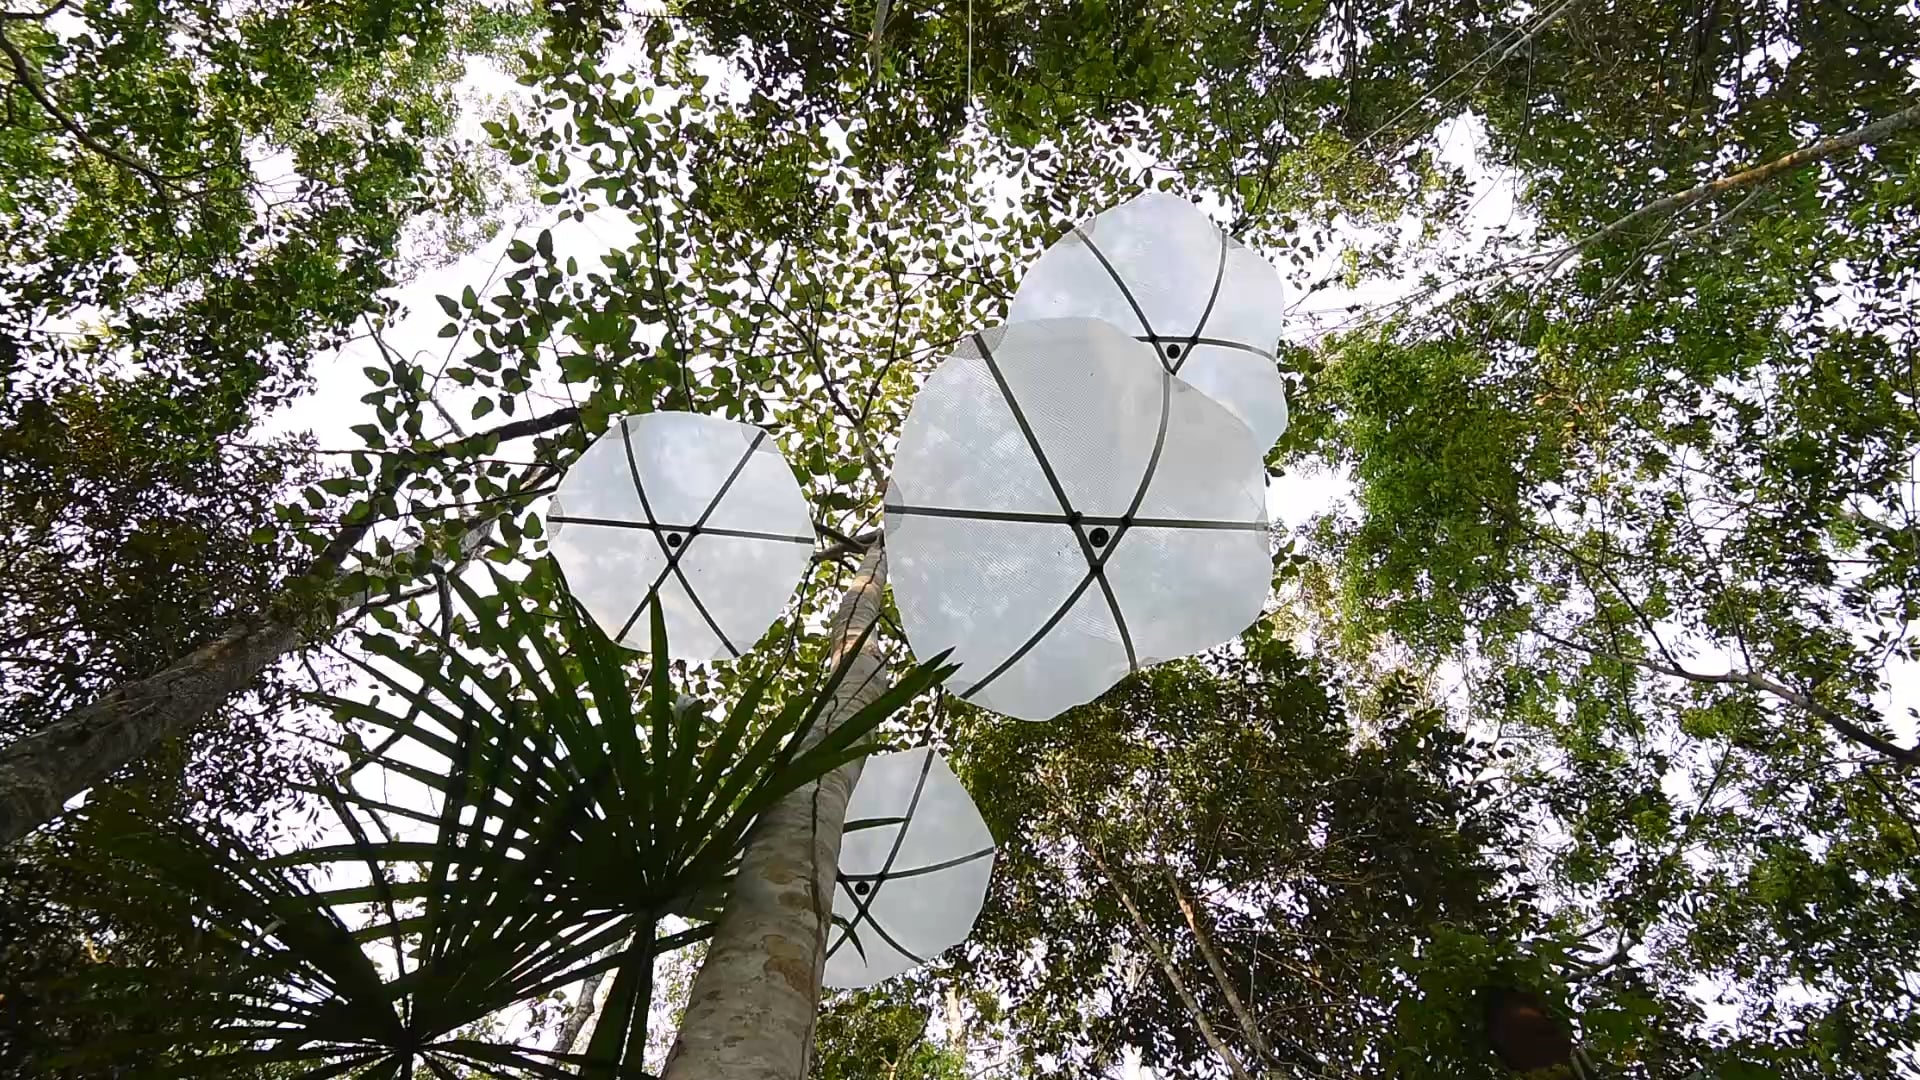 Capturing Canopy - Rain Powered Generator and Collector for the Amazon